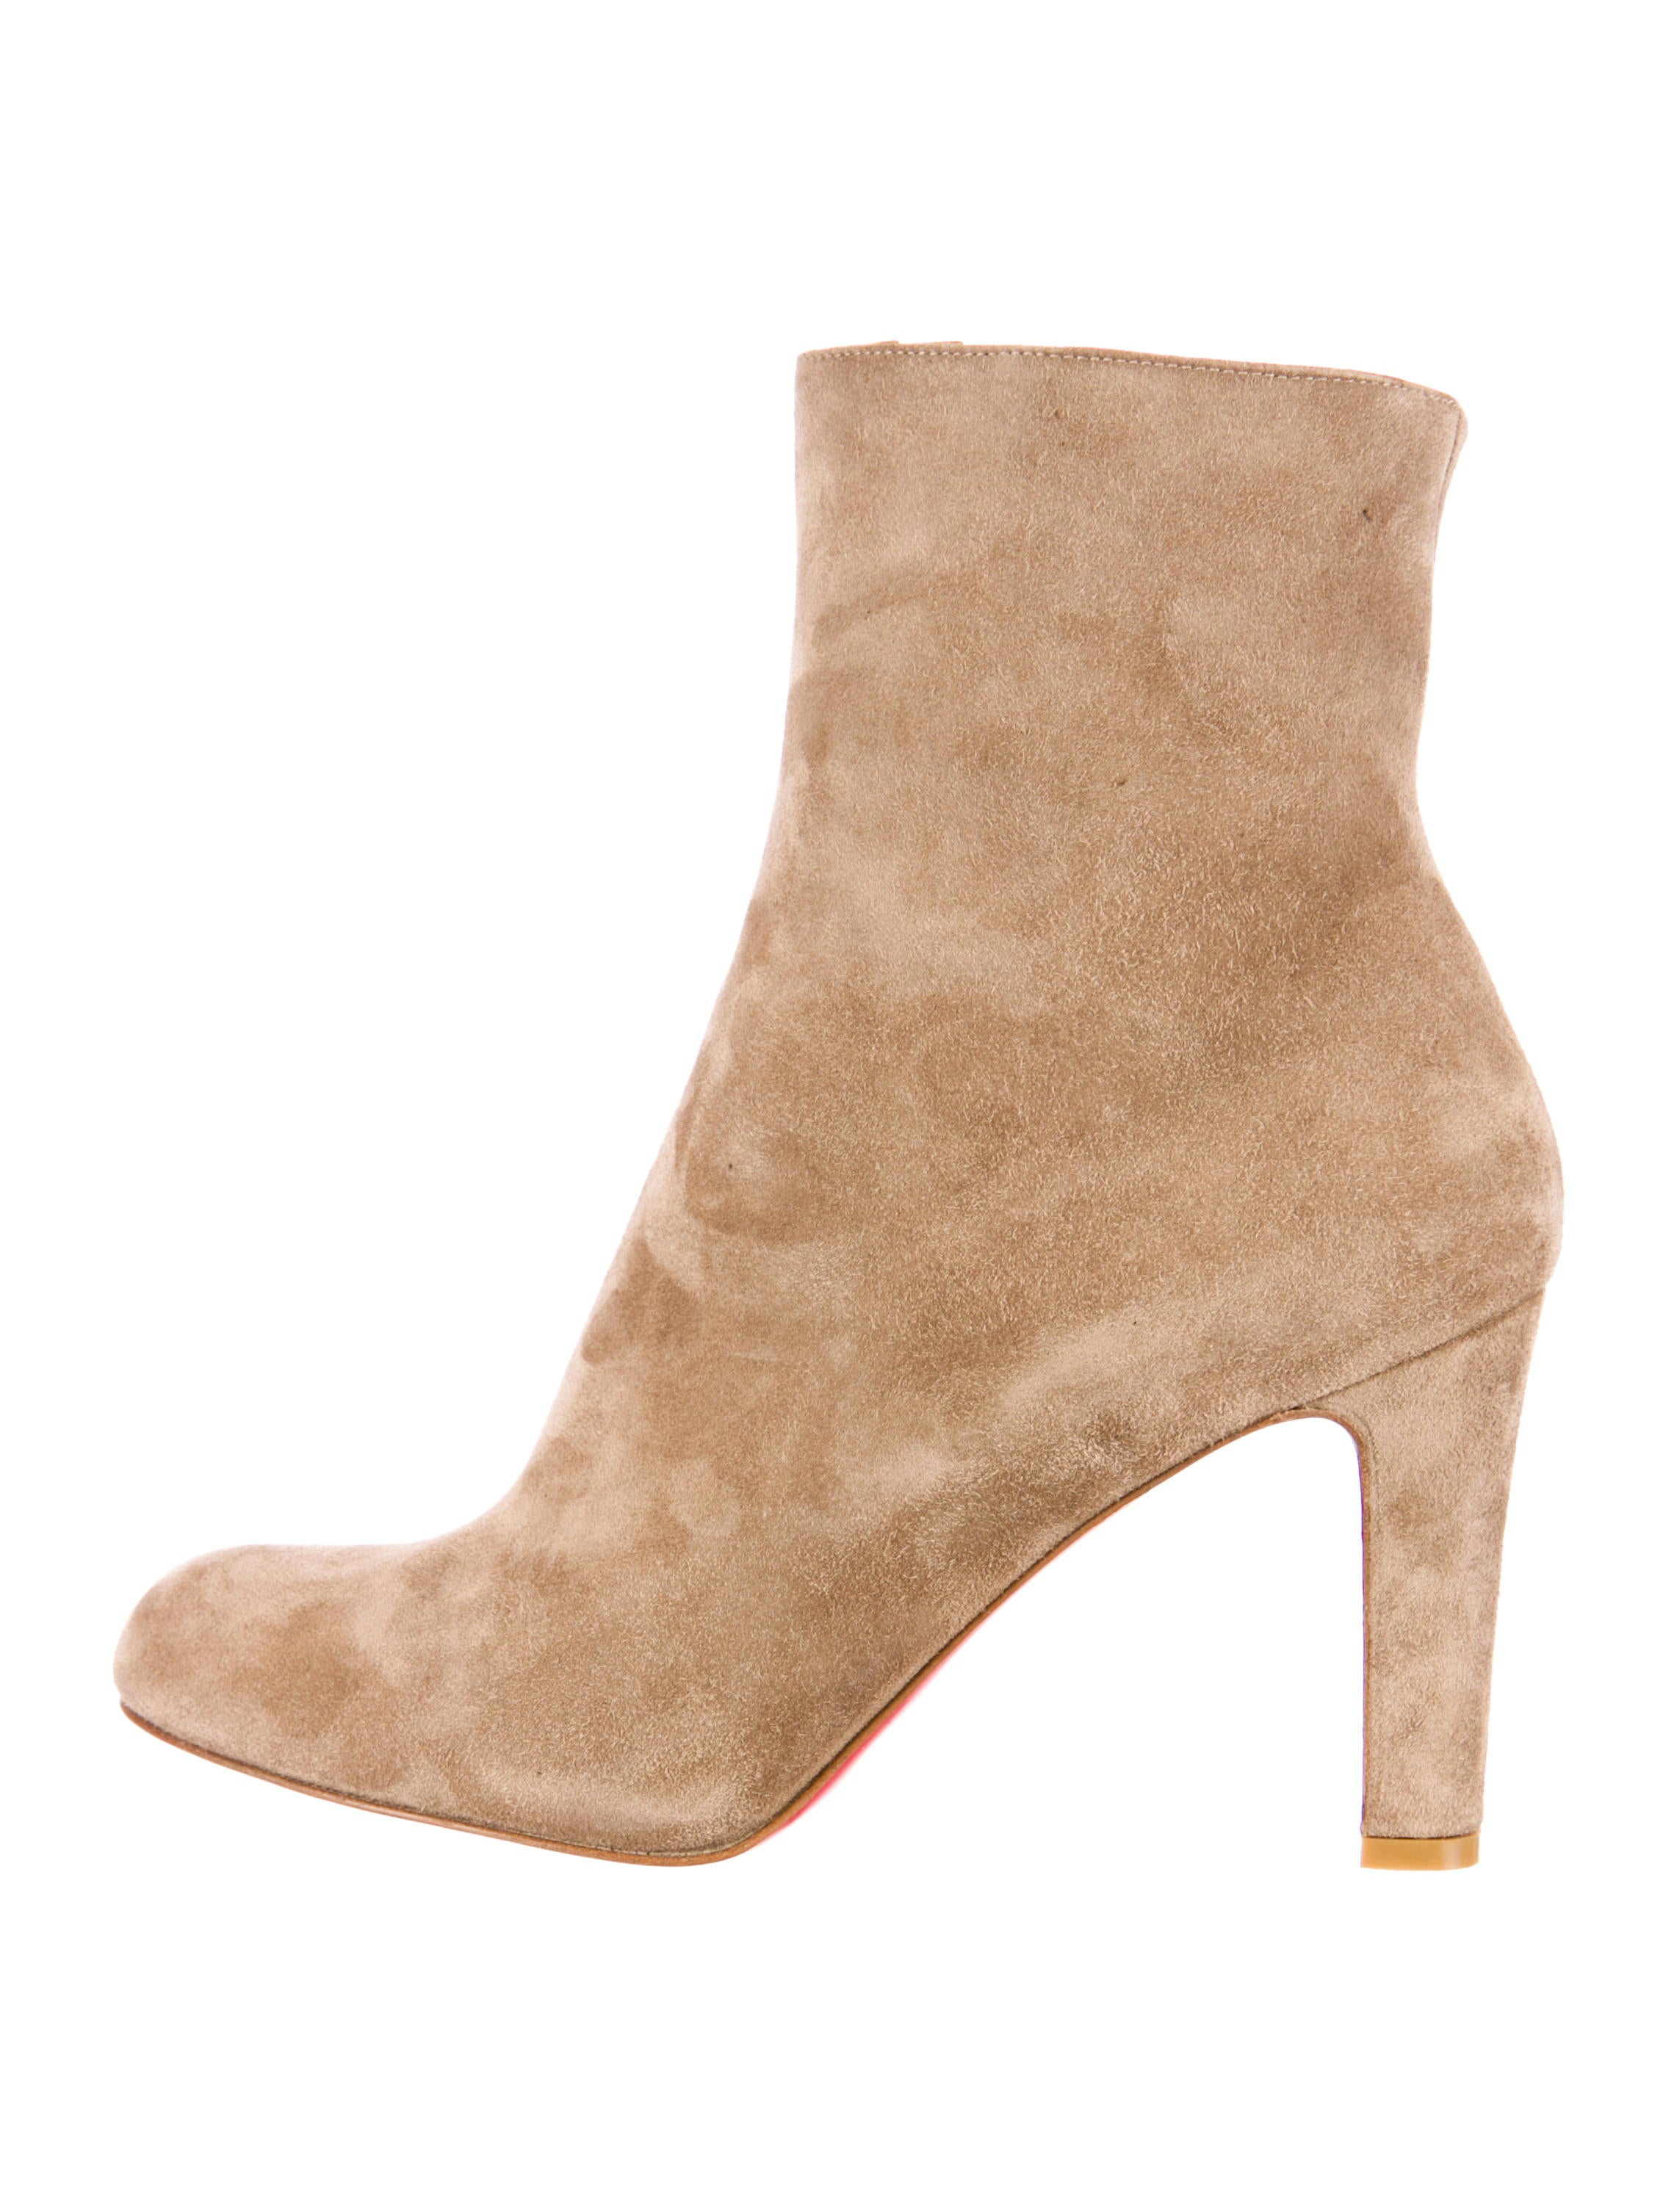 christian louboutin suede boots Brown covered heels | The Little ...